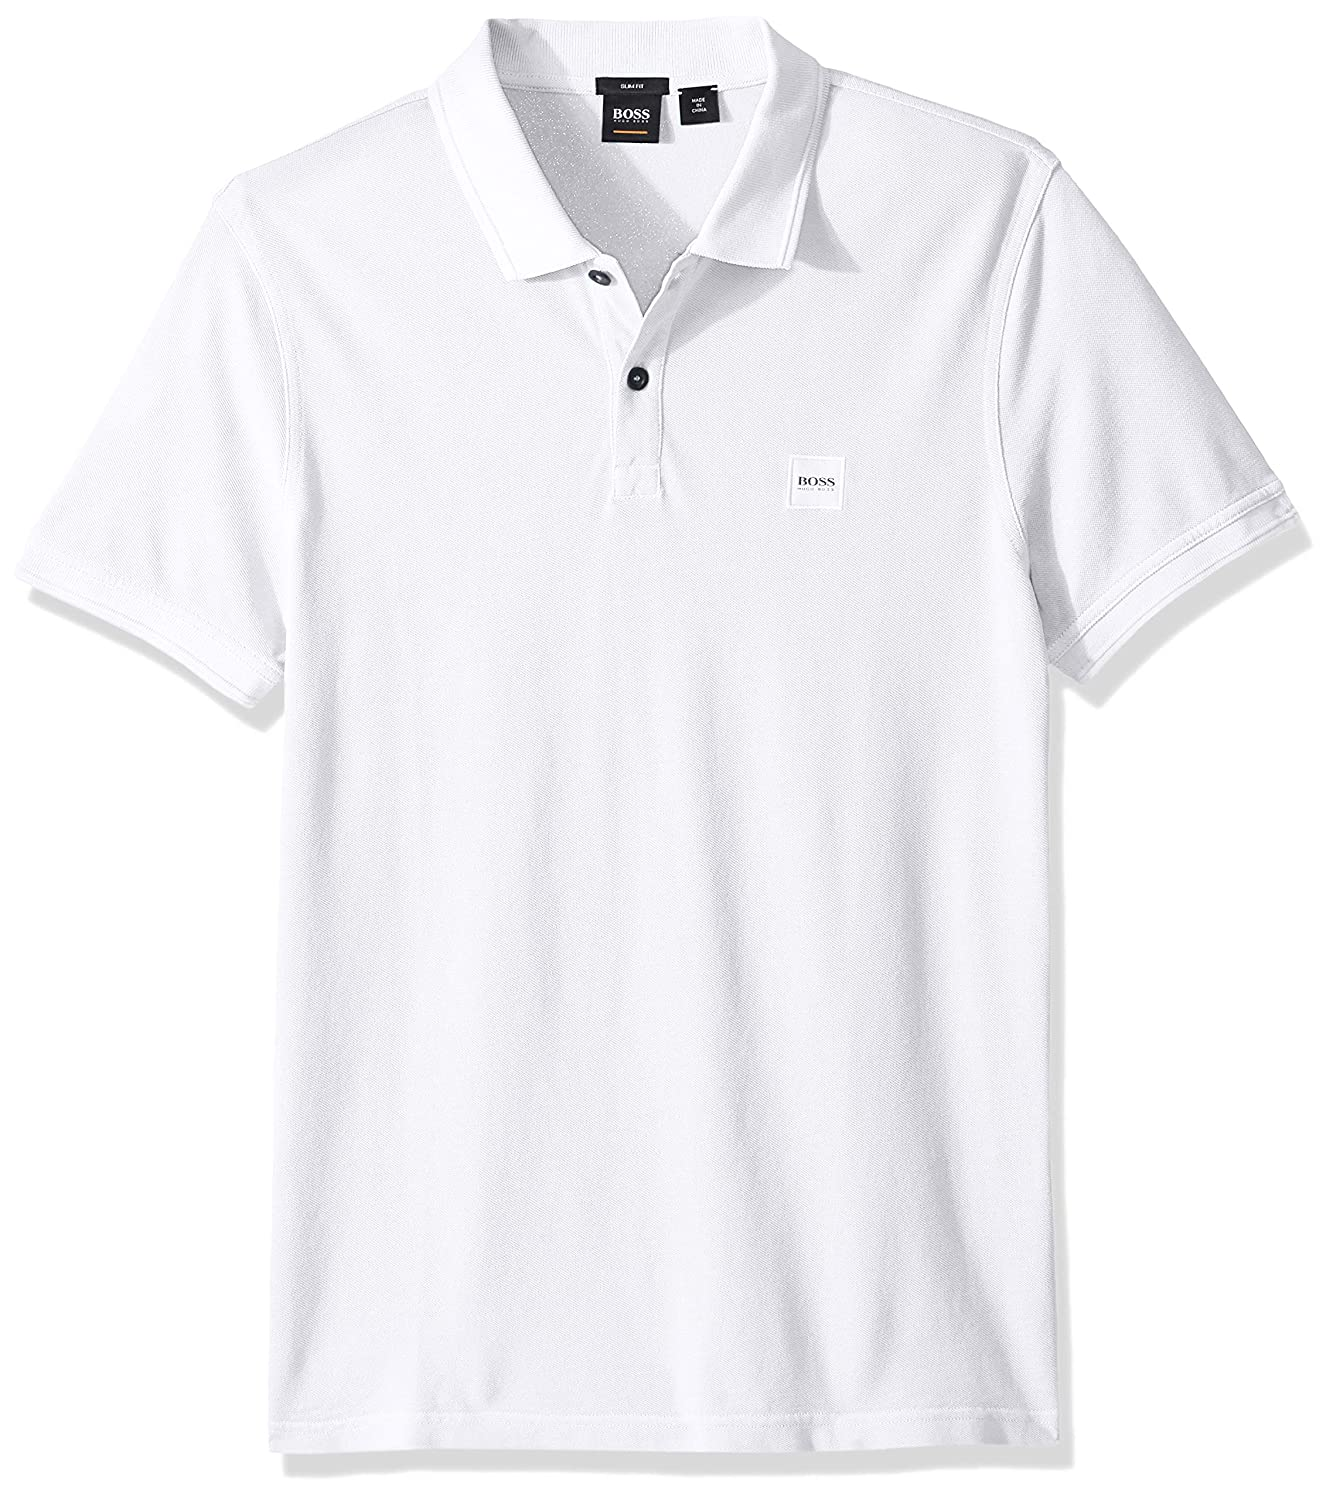 8b8be7ae73b Amazon.com  Hugo Boss Men s Prime Slim Fit Short Sleeve Polo T-Shirt   Clothing